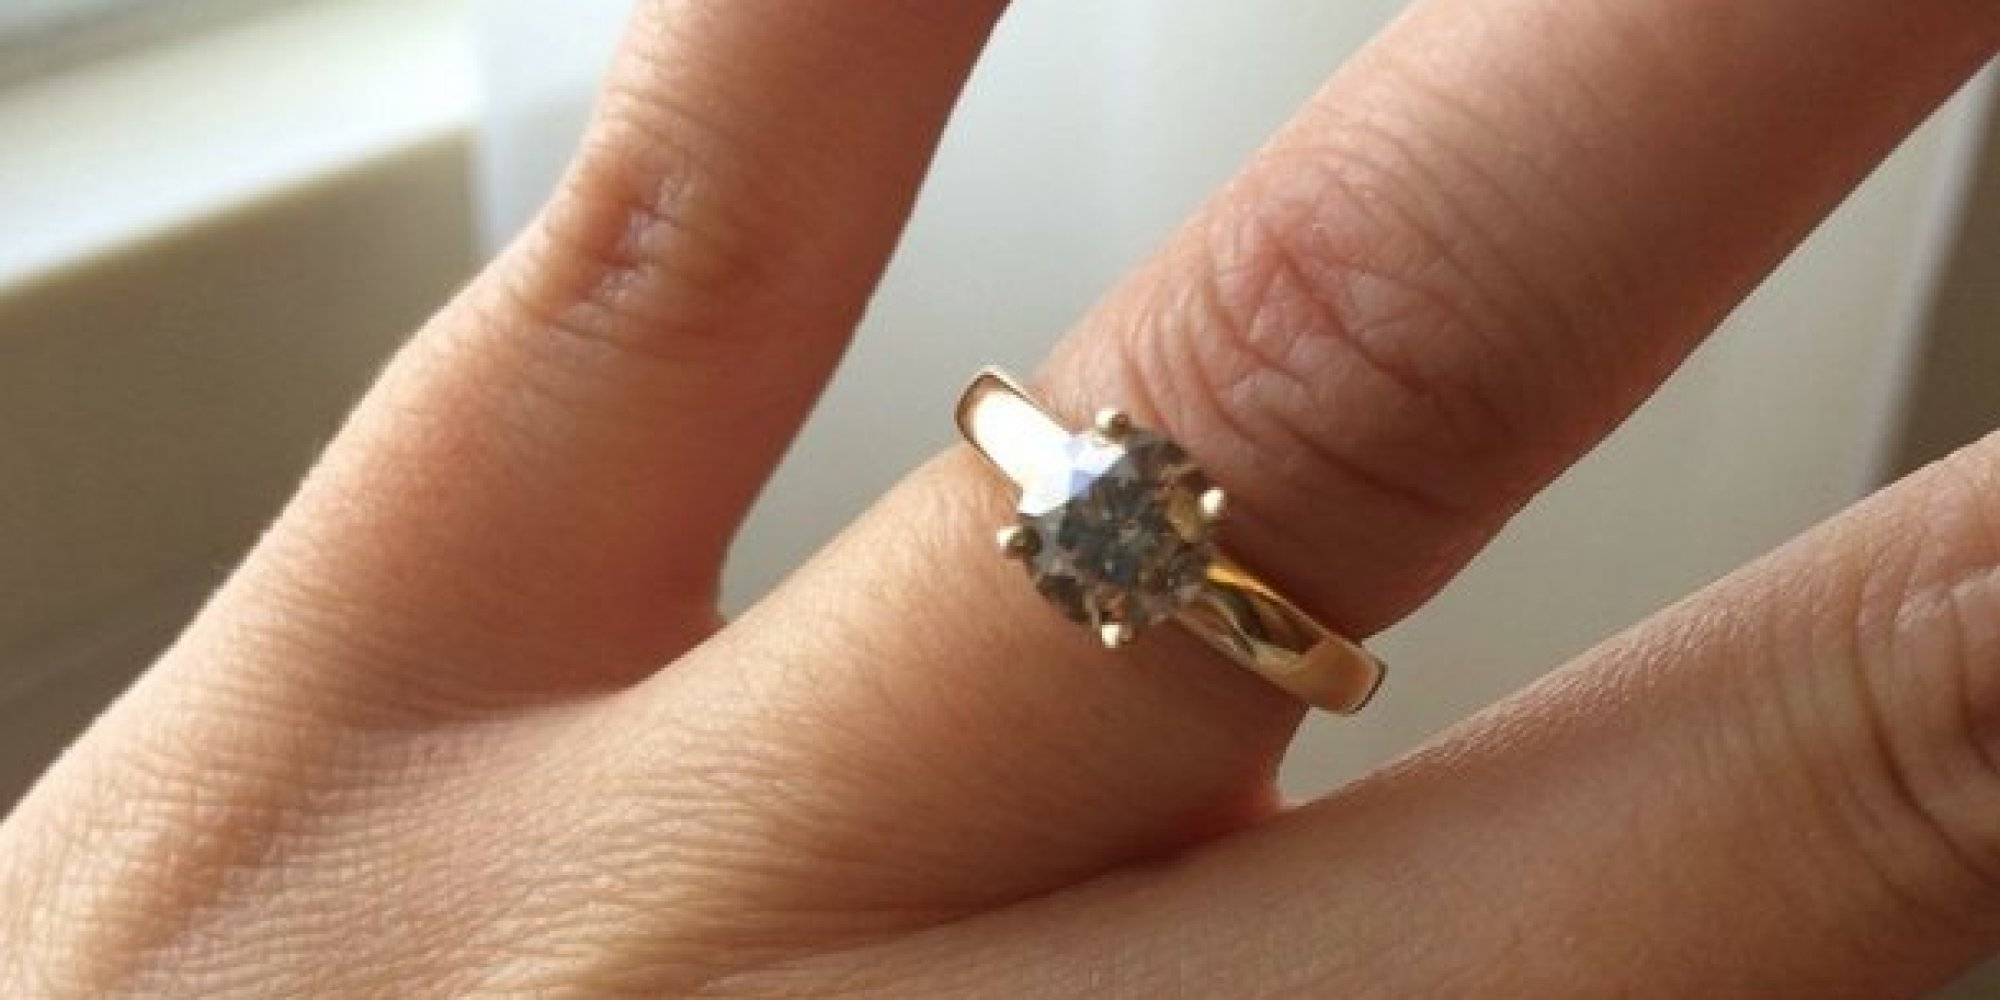 Man Surprises Girlfriend With Handmade Engagement Ring | HuffPost